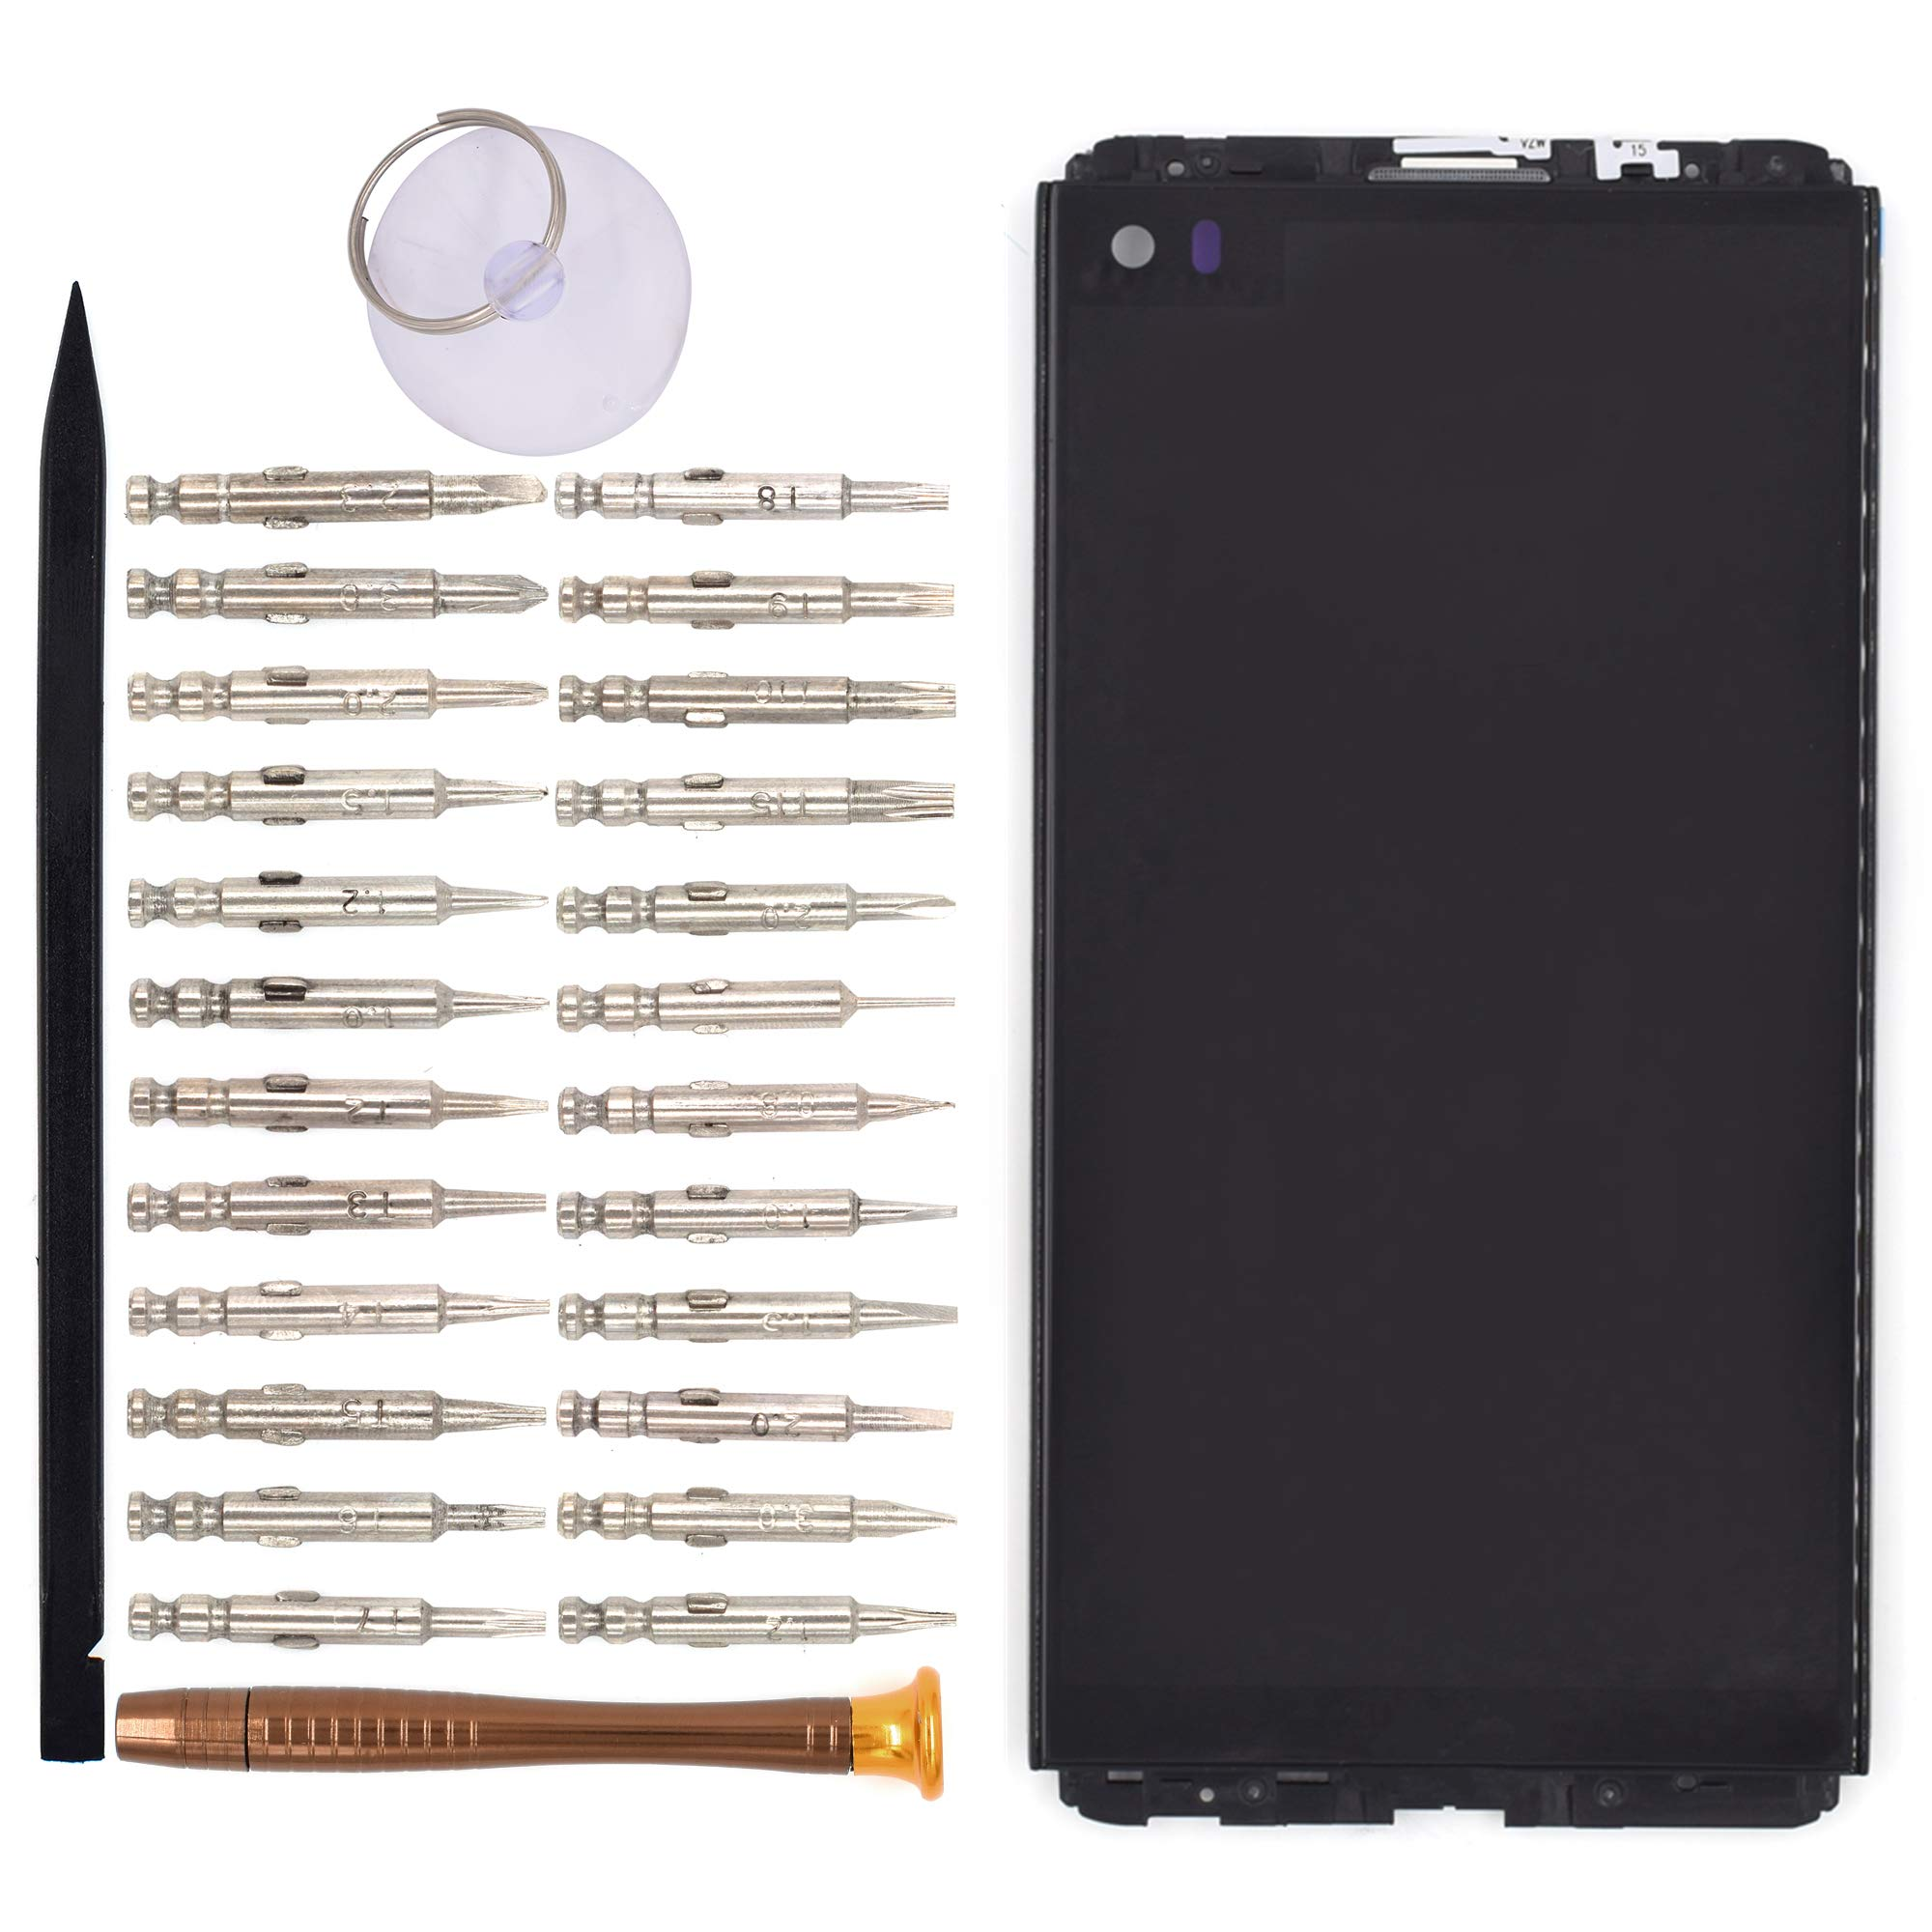 LCD Digitizer Assembly with Front Housing for LG V20 H910 LS997 US996 VS995 H990N H990DS H990T H918(Black)